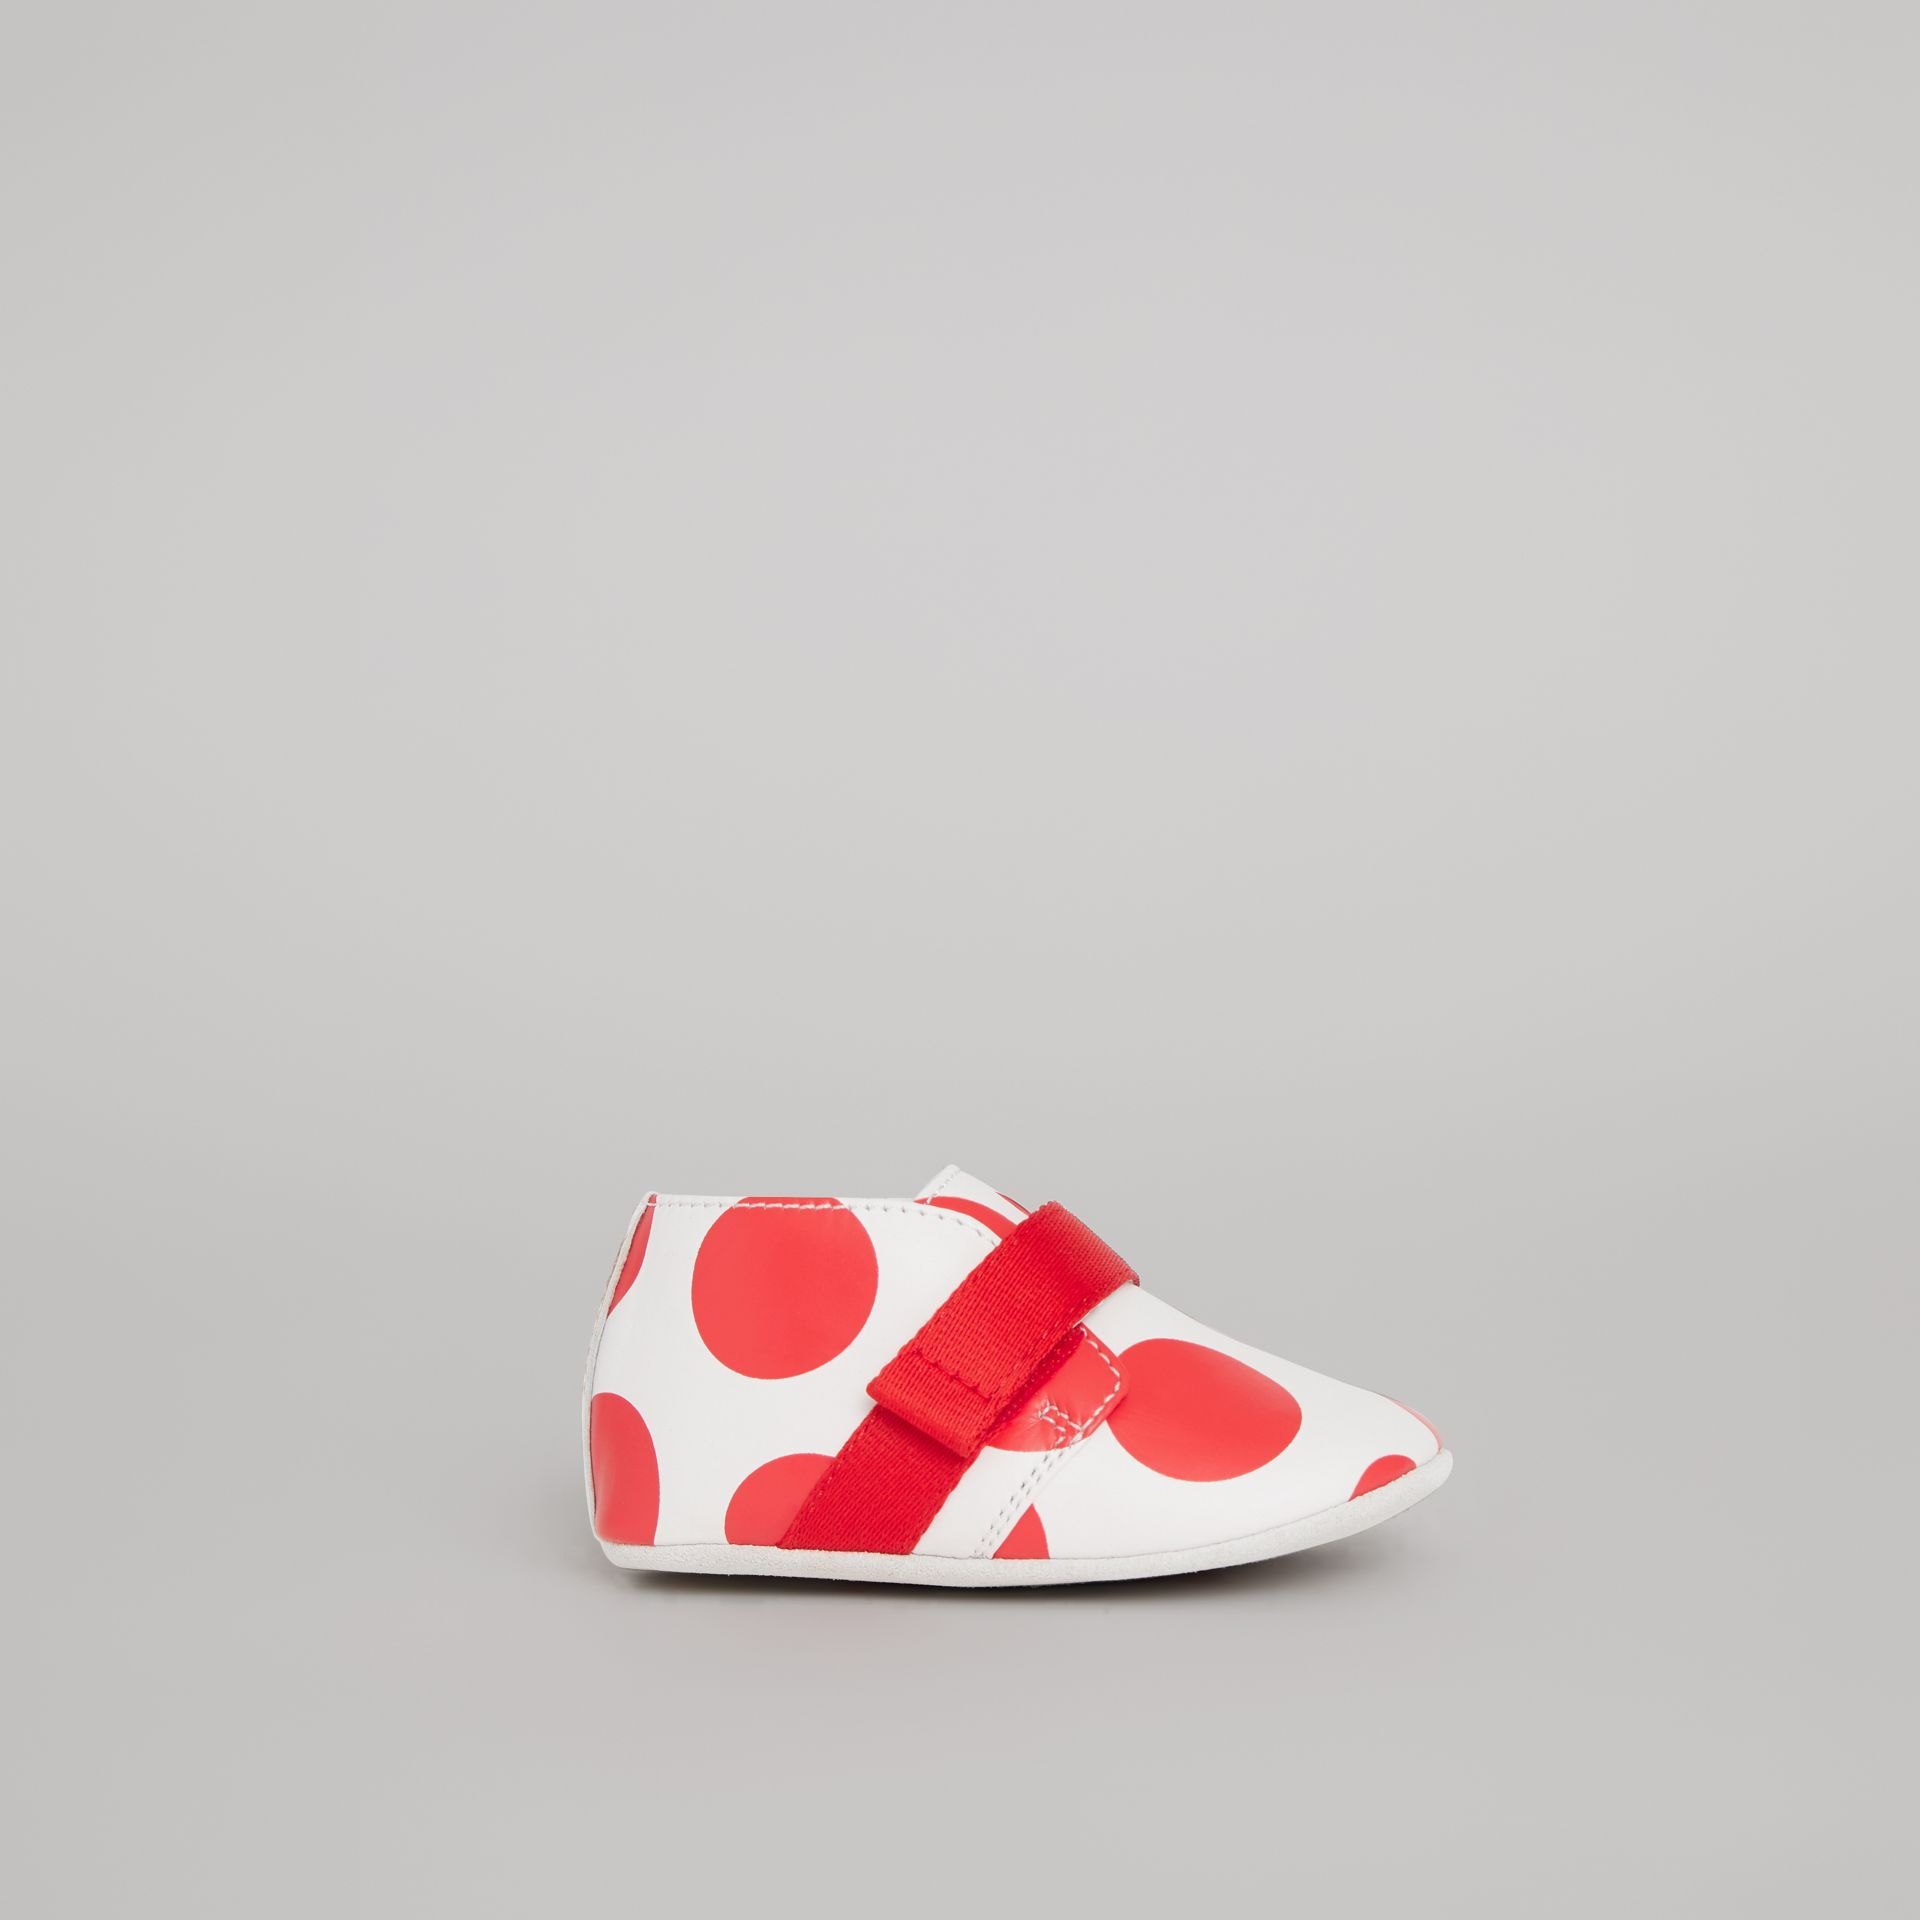 Spot Print Leather Shoes in Bright Red - Children | Burberry - gallery image 3